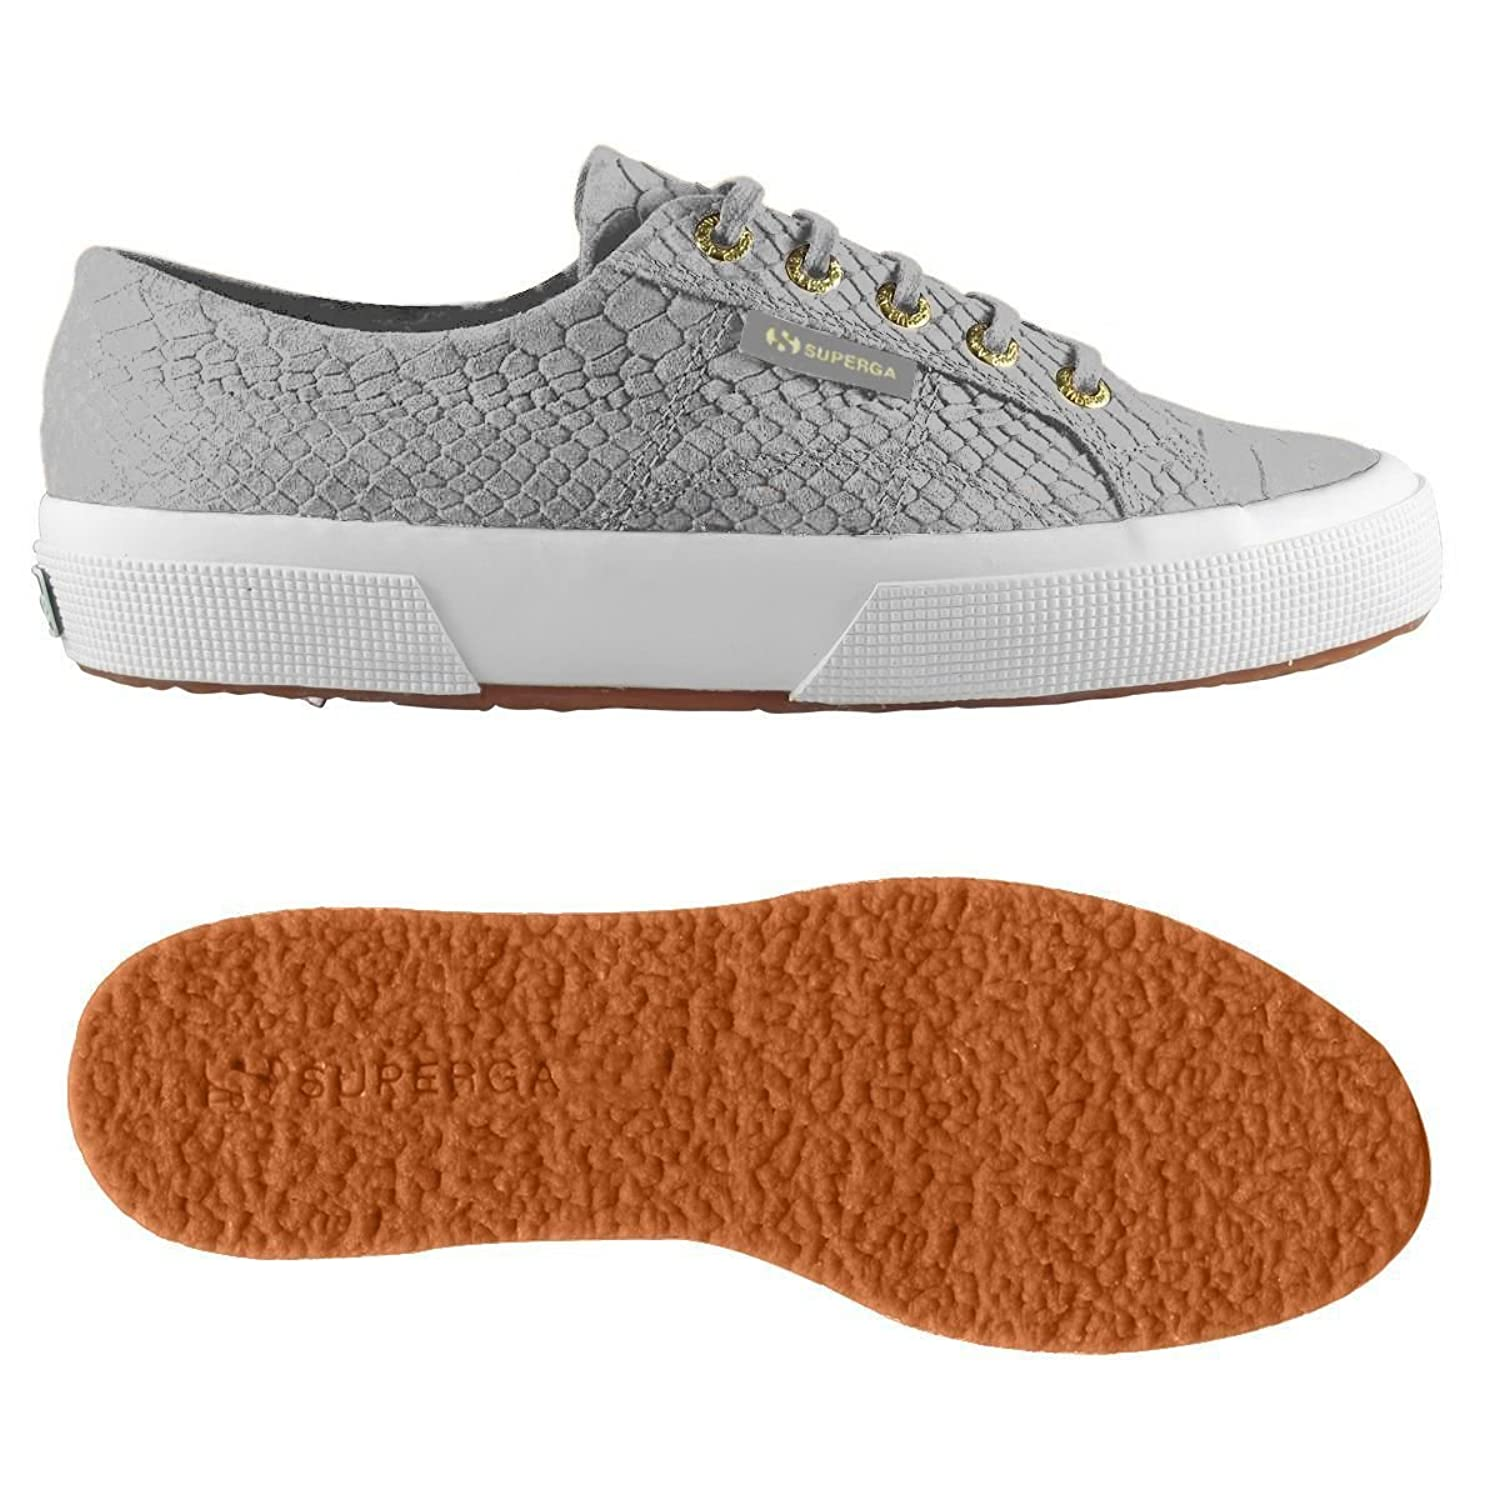 factory authentic great deals quality products Superga Women's 2750-Fglanacondaw Trainers: Amazon.co.uk: Shoes & Bags